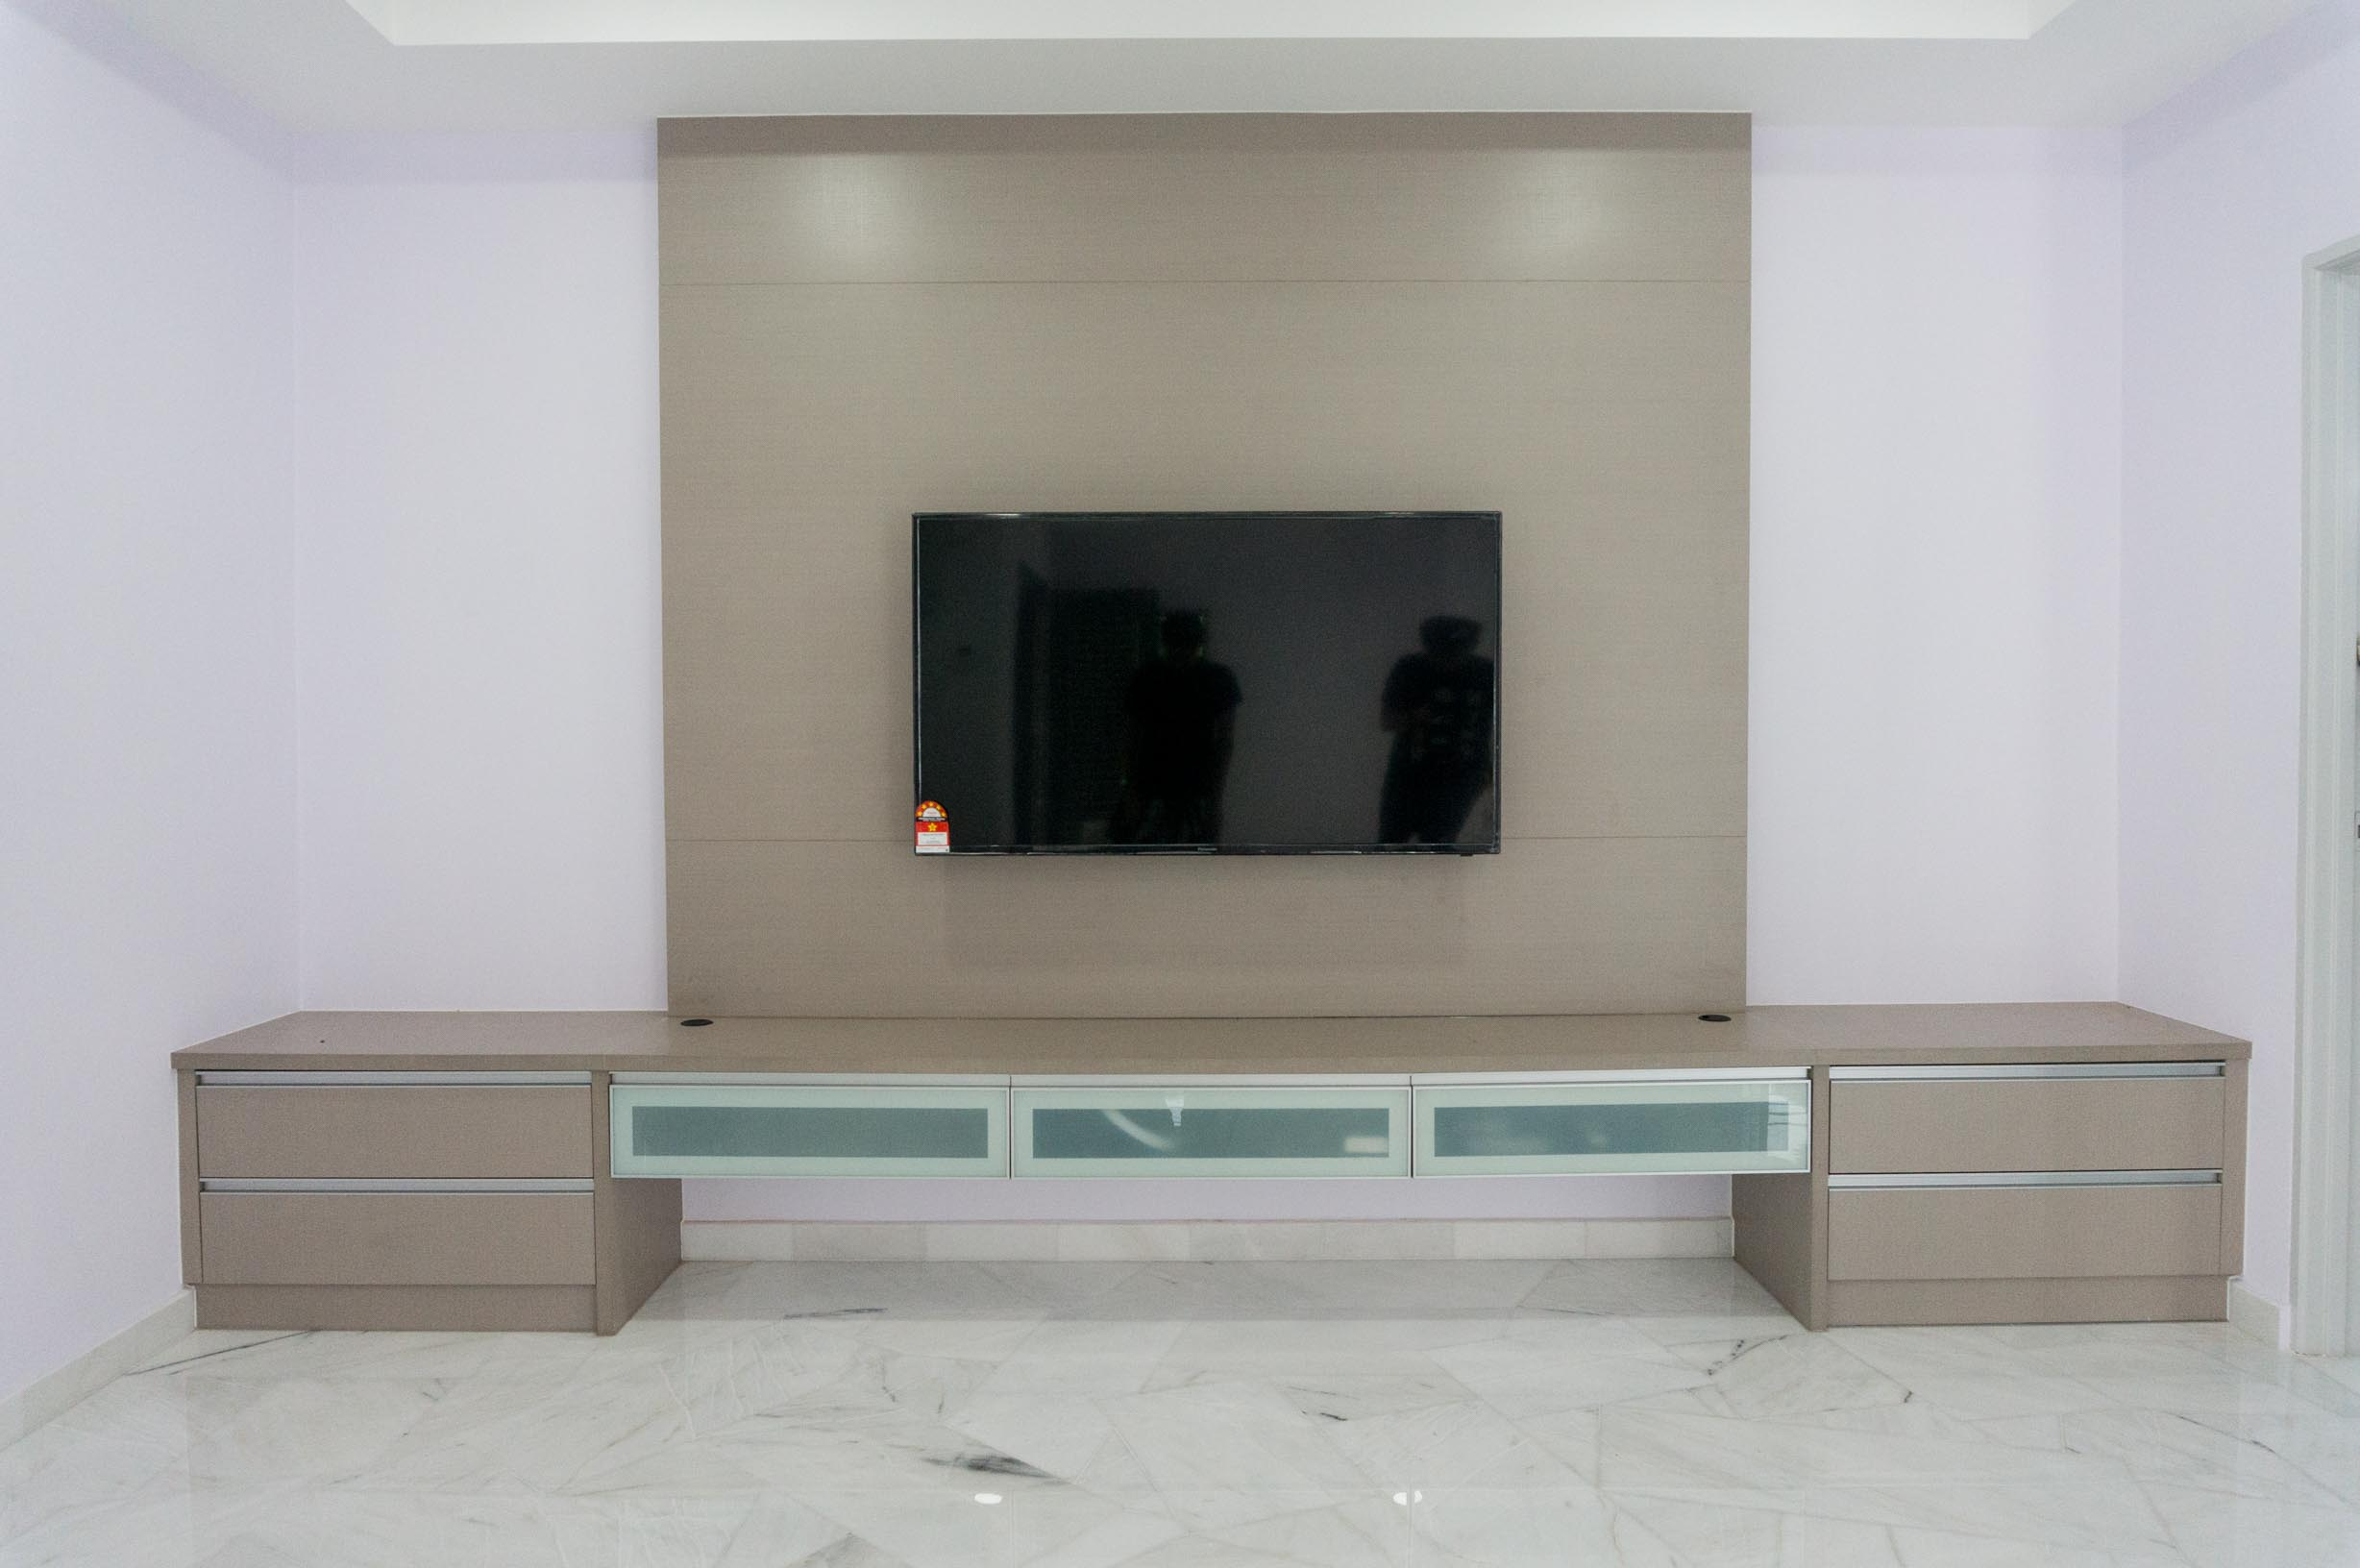 ab kitchen cabinet solutions is dedicated in providing homes with custom built in kitchen cabinet wardrobe tv cabinet and decorative cabinet  ab kitchen cabinet solutions   custom built in kitchen cabinet      rh   abkitchen com my